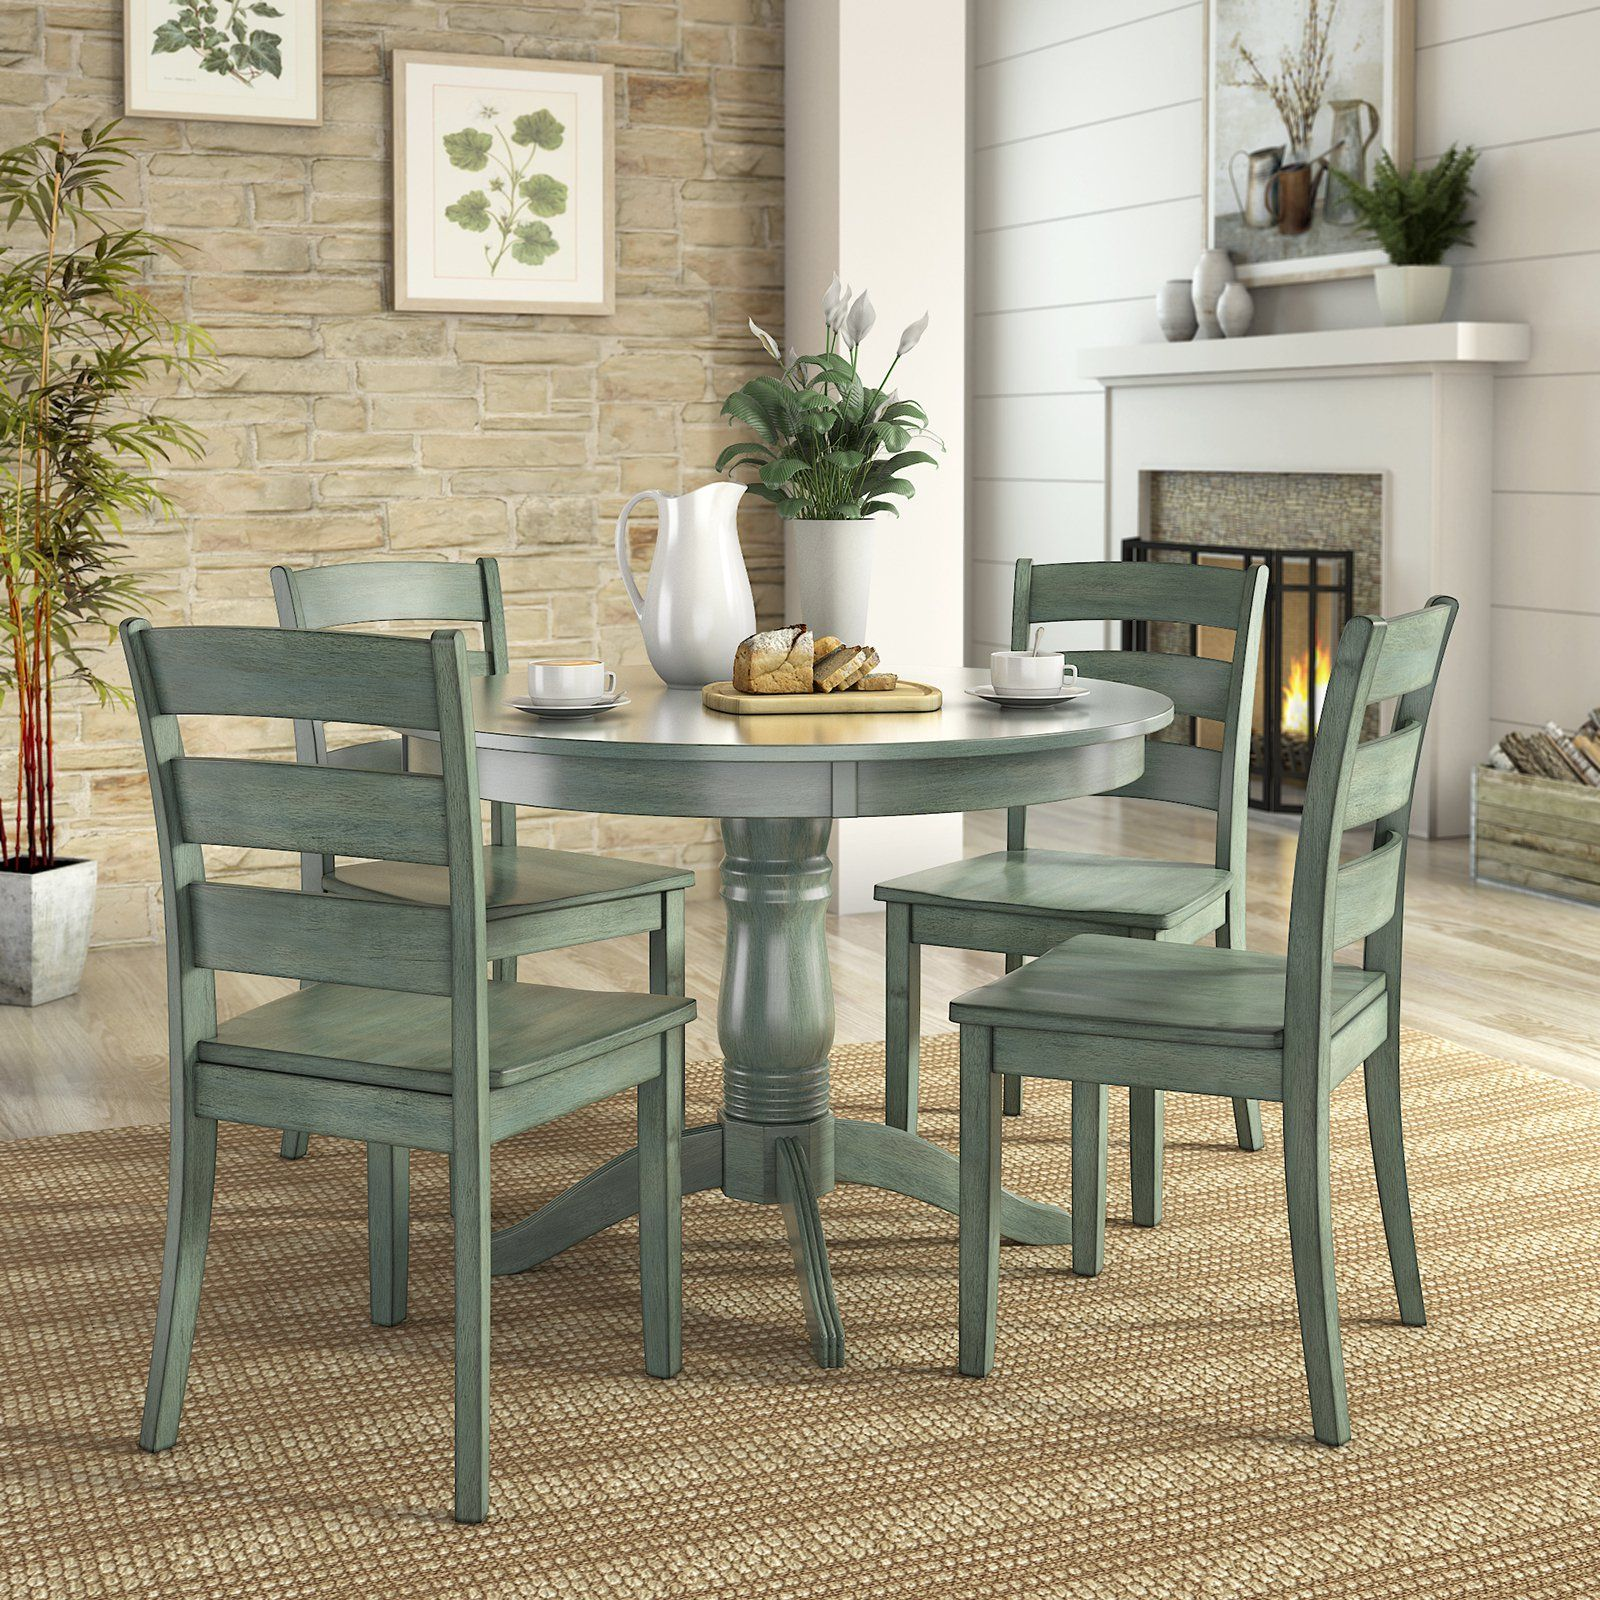 Weston Home Lexington 5 Piece Round Dining Table Set with Ladder ...